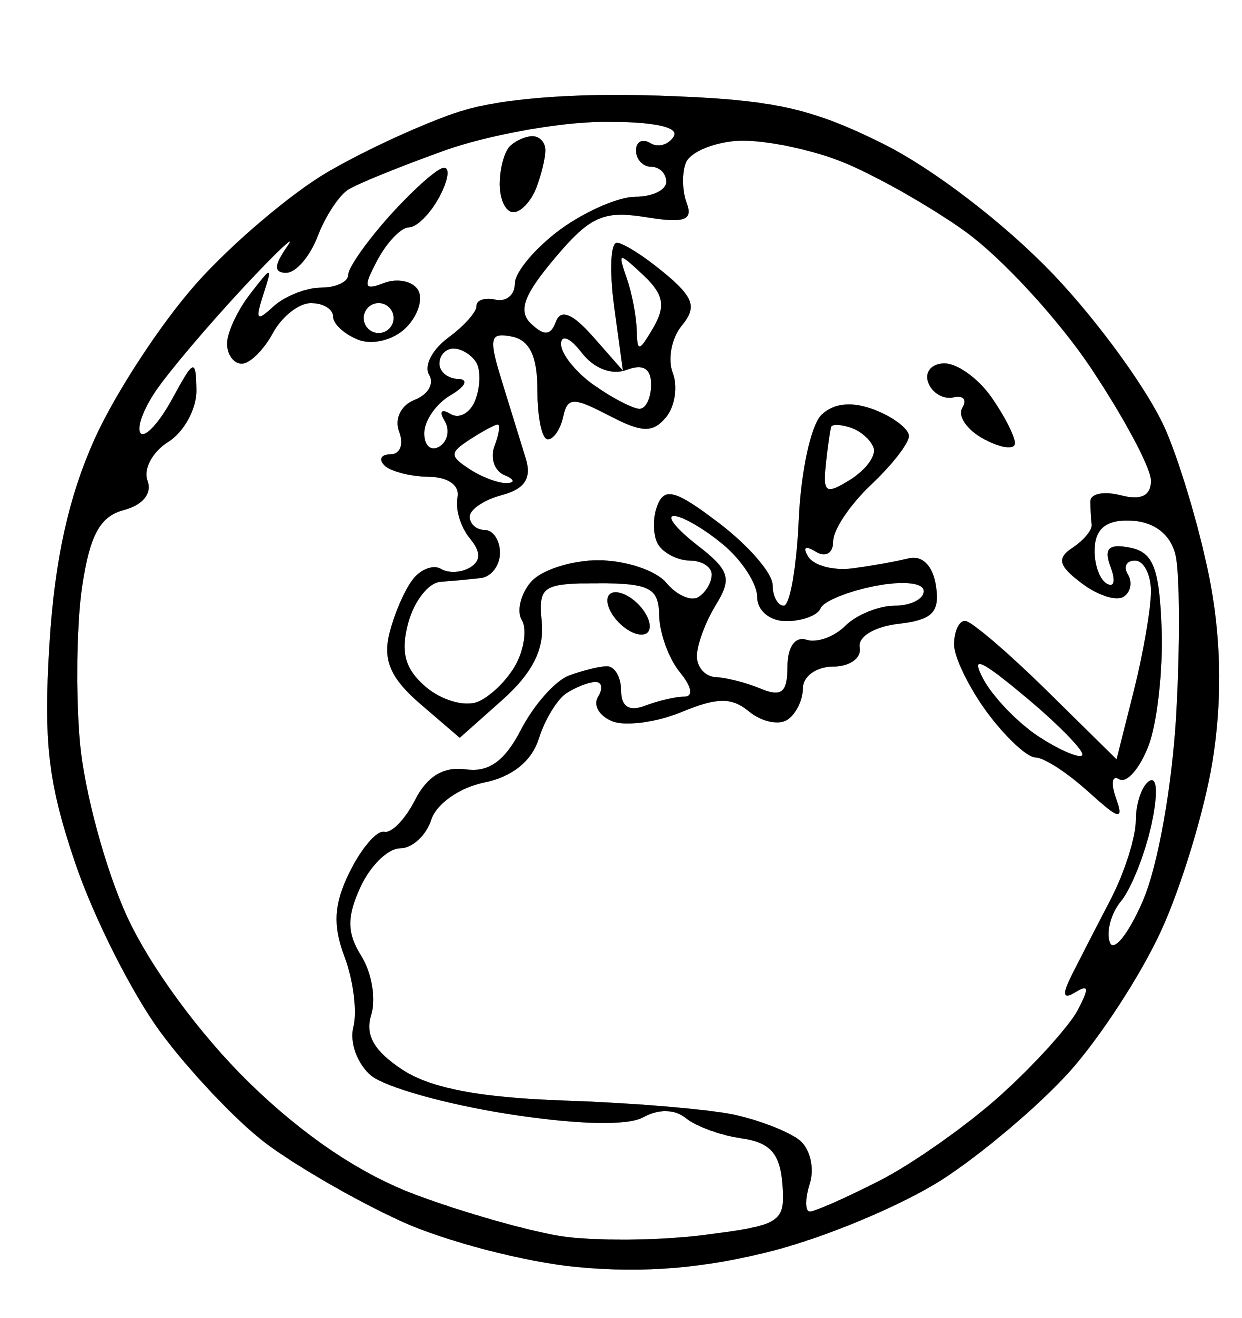 Planet Earth clipart colored #3